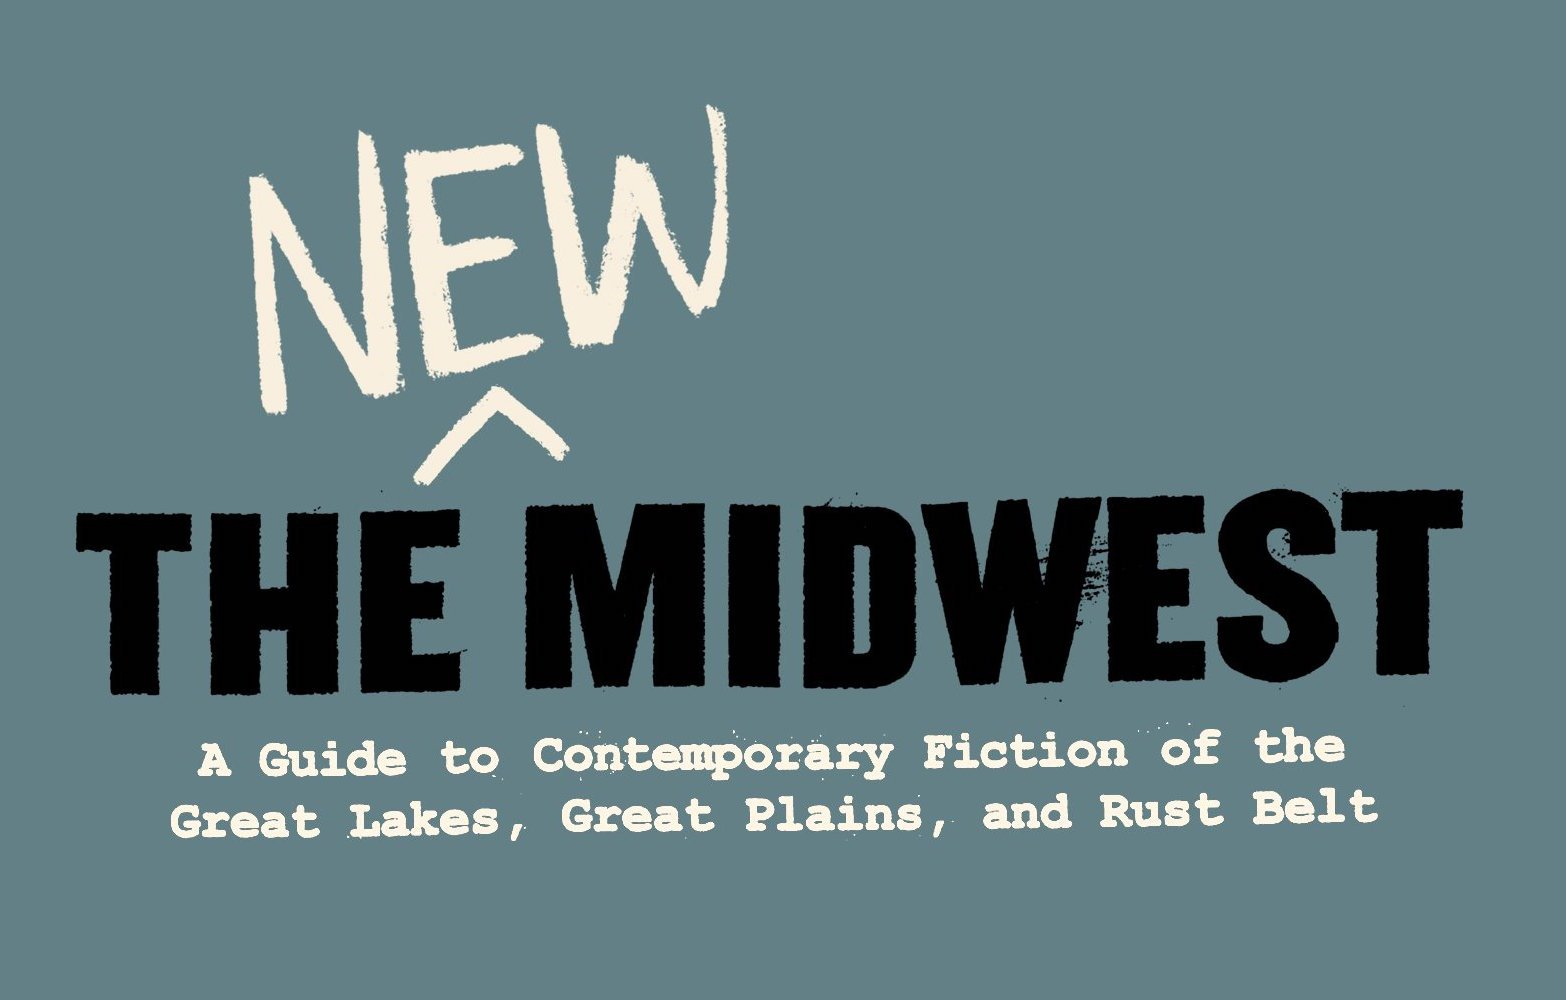 'The New Midwest' Hailed by Critics as the Book we Need in the Trump Era